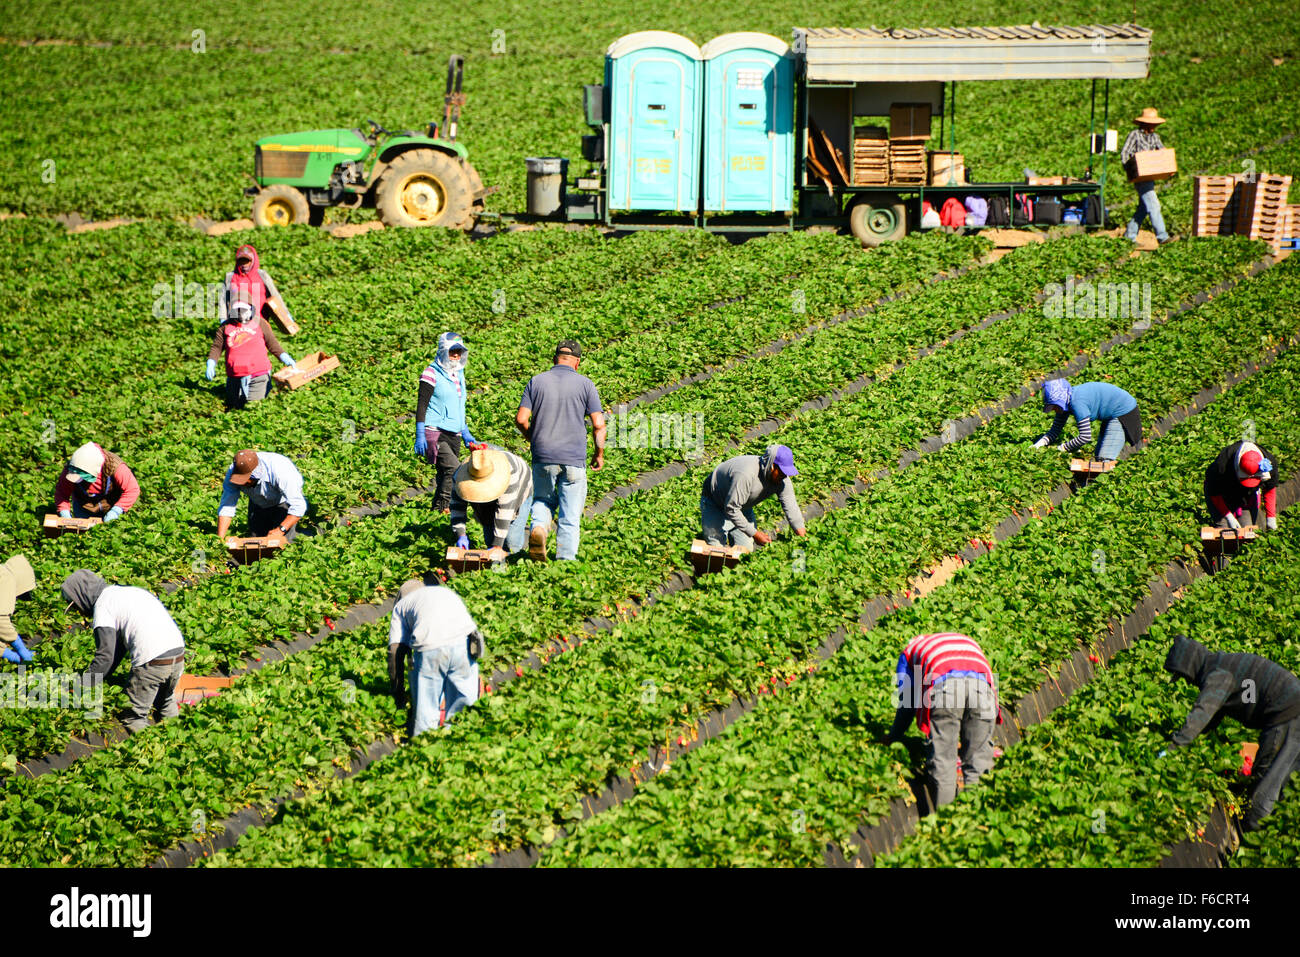 mexican migrant workers This week, im posting segments from my documentary, voices from the fields, a story of migrant workers in michigan it airs today on stateside migrant.